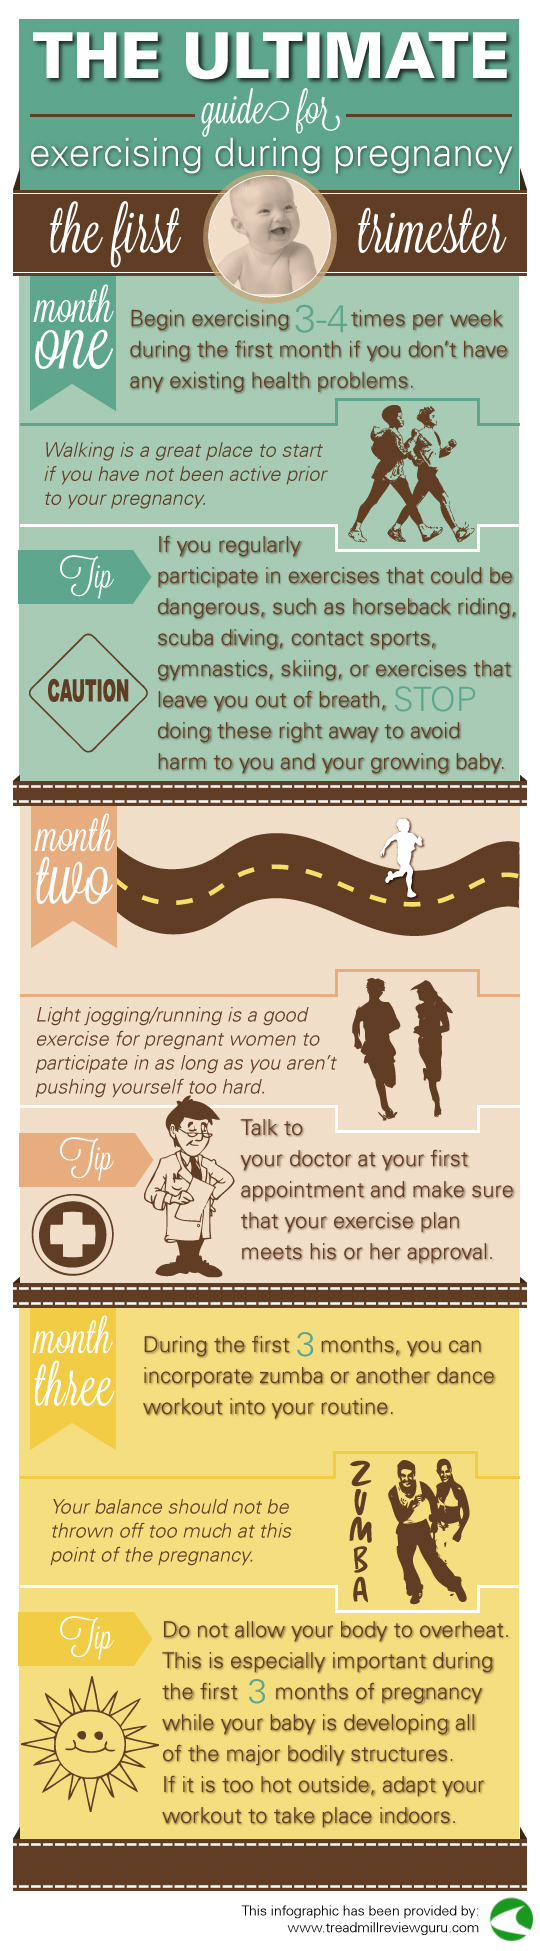 first trimester exercise guide